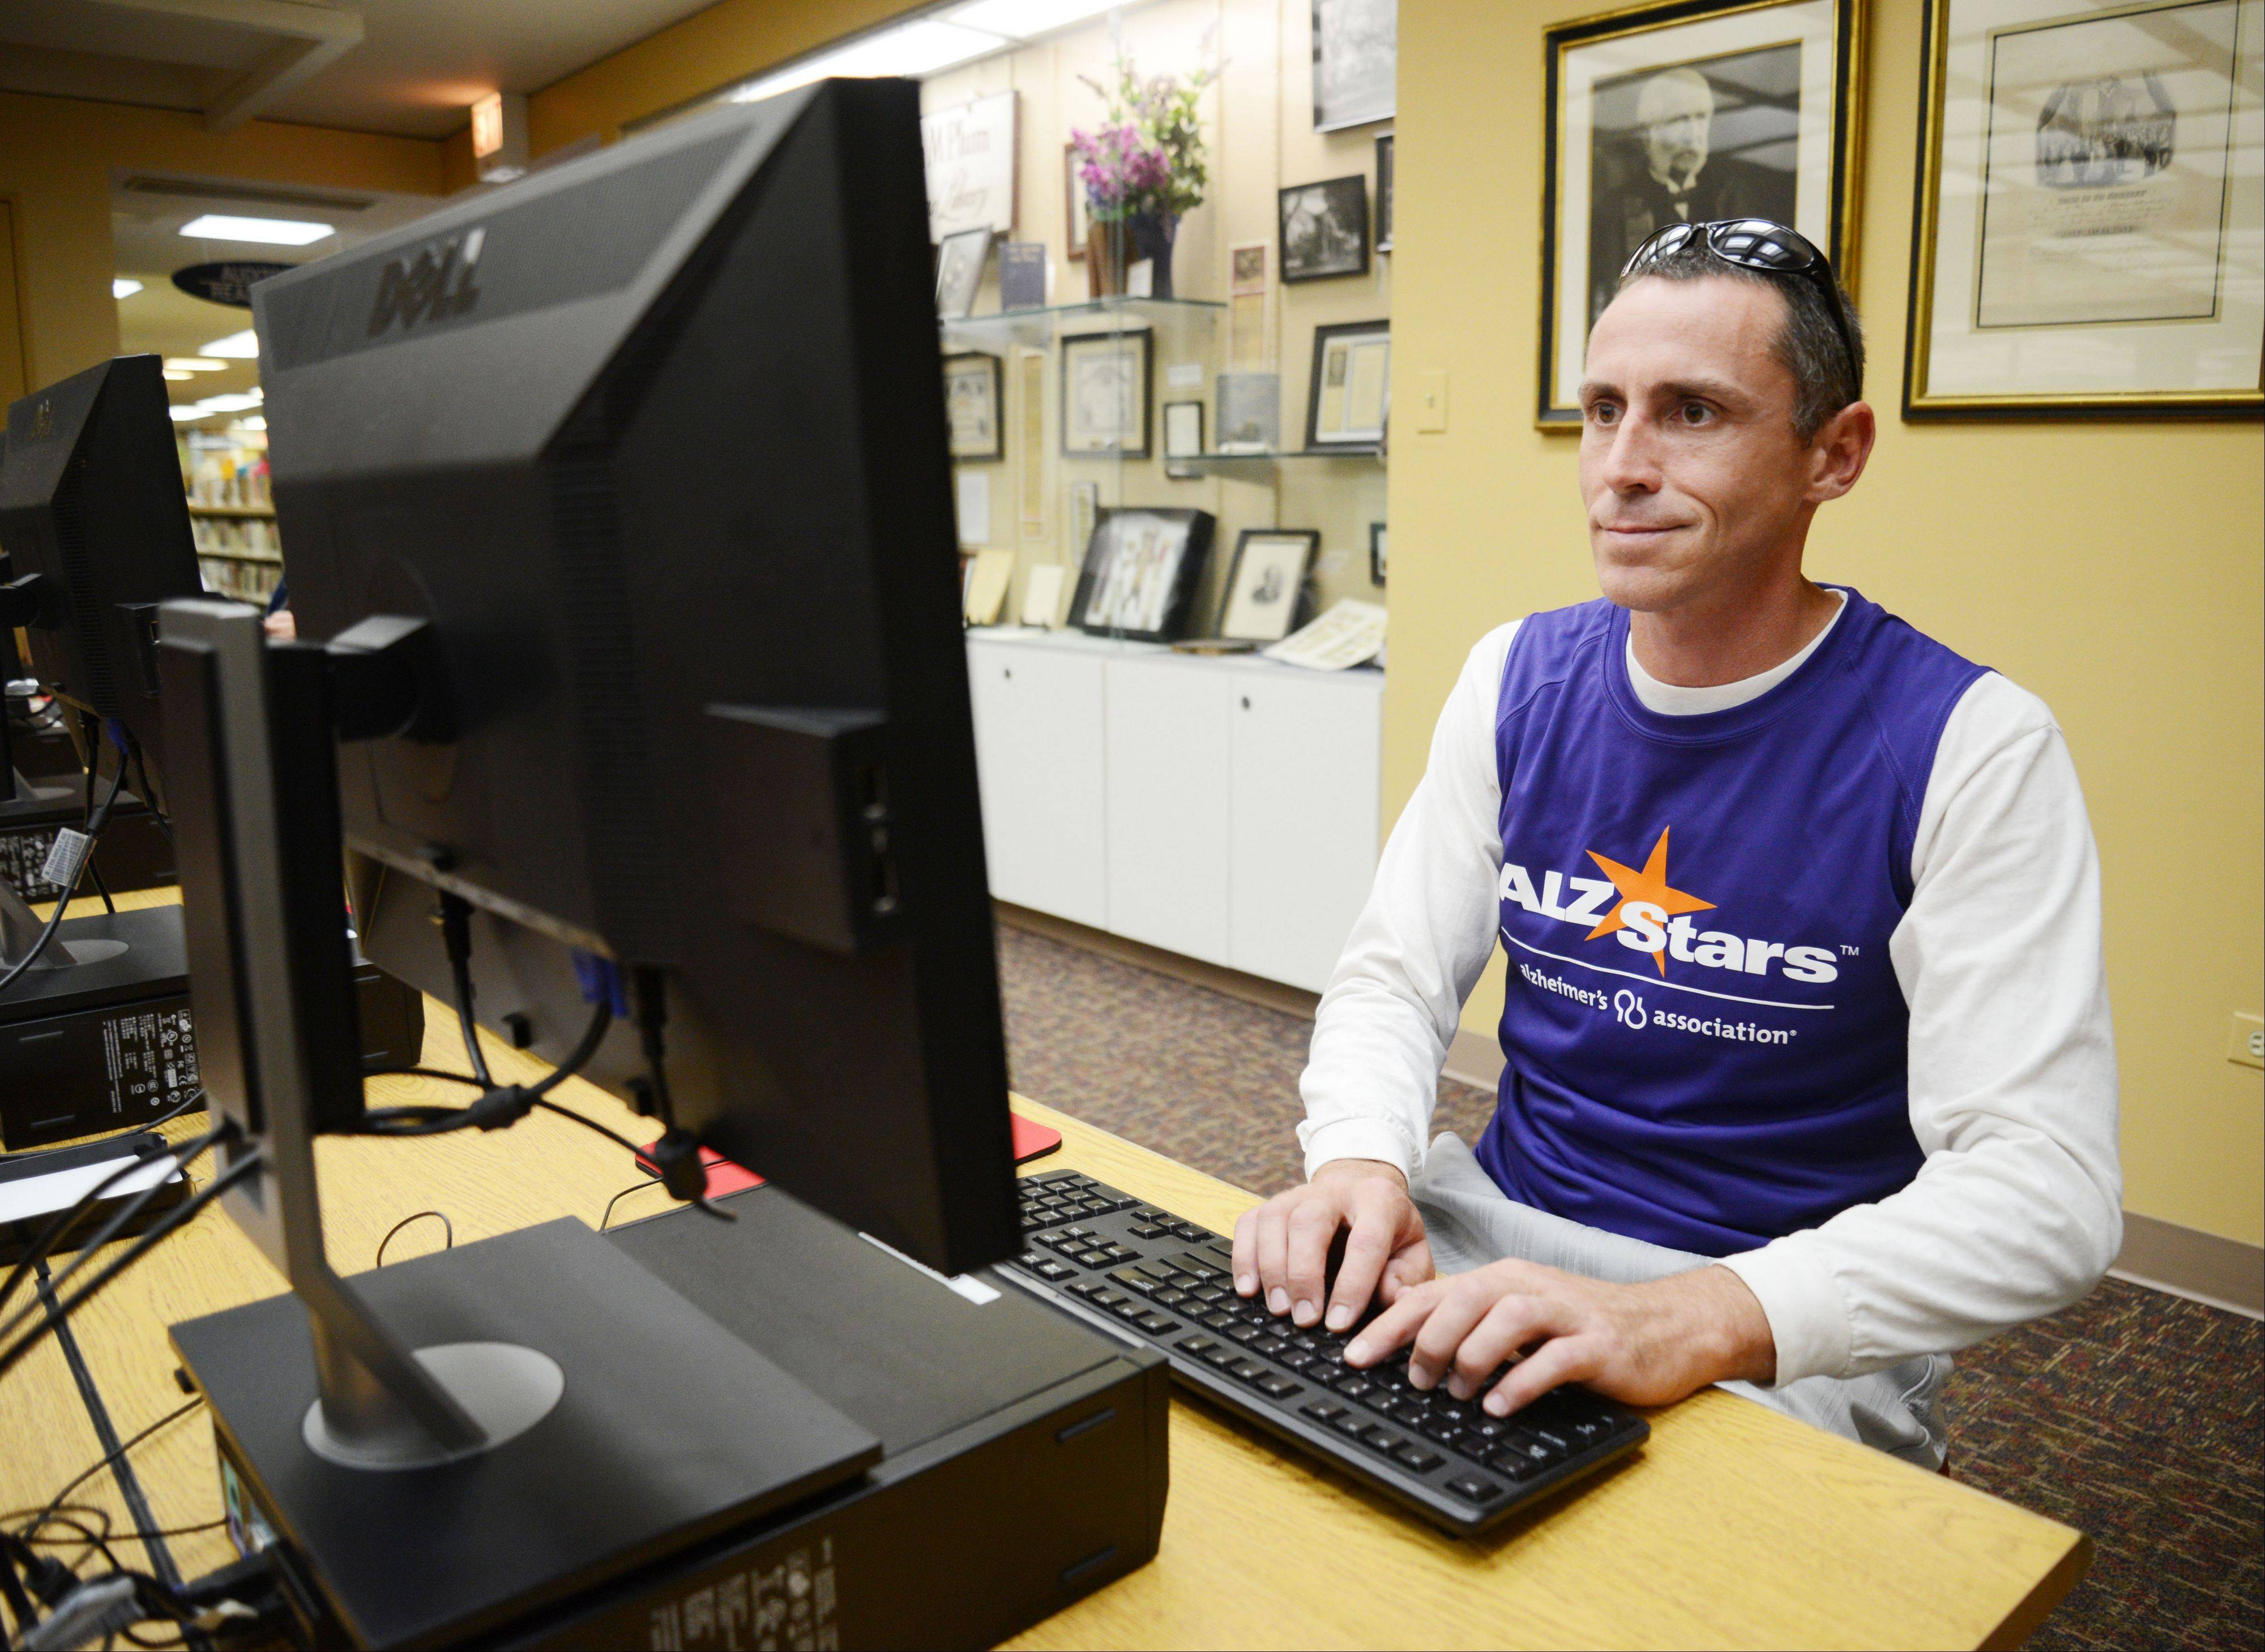 William Glass of Lombard did a great deal of research at the Helen Plum Library before embarking on a 750-mile journey to walk, alone, to Atlanta to raise money and awareness for the fight against Alzheimer�s disease. His mother was diagnosed with the disease in 2010.